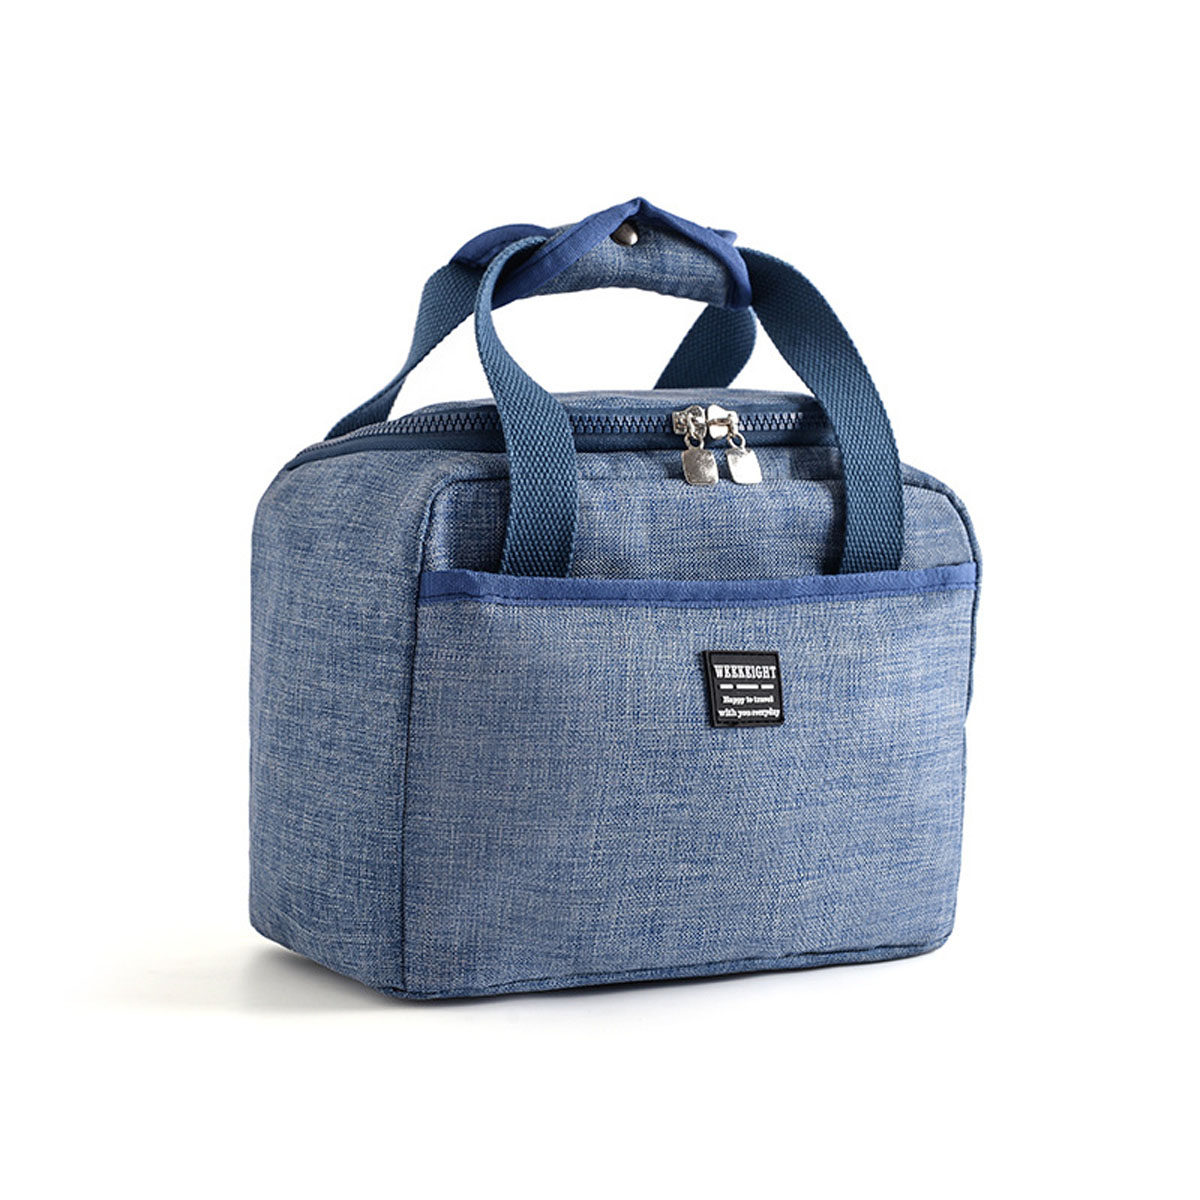 Additional Zipper Pocket), Small MAXTOP Lunch Bags for Women,Insulated Thermal Lunch Tote Bag,Lunch Box with Front Pocket for Office Work Picnic Shopping Blue